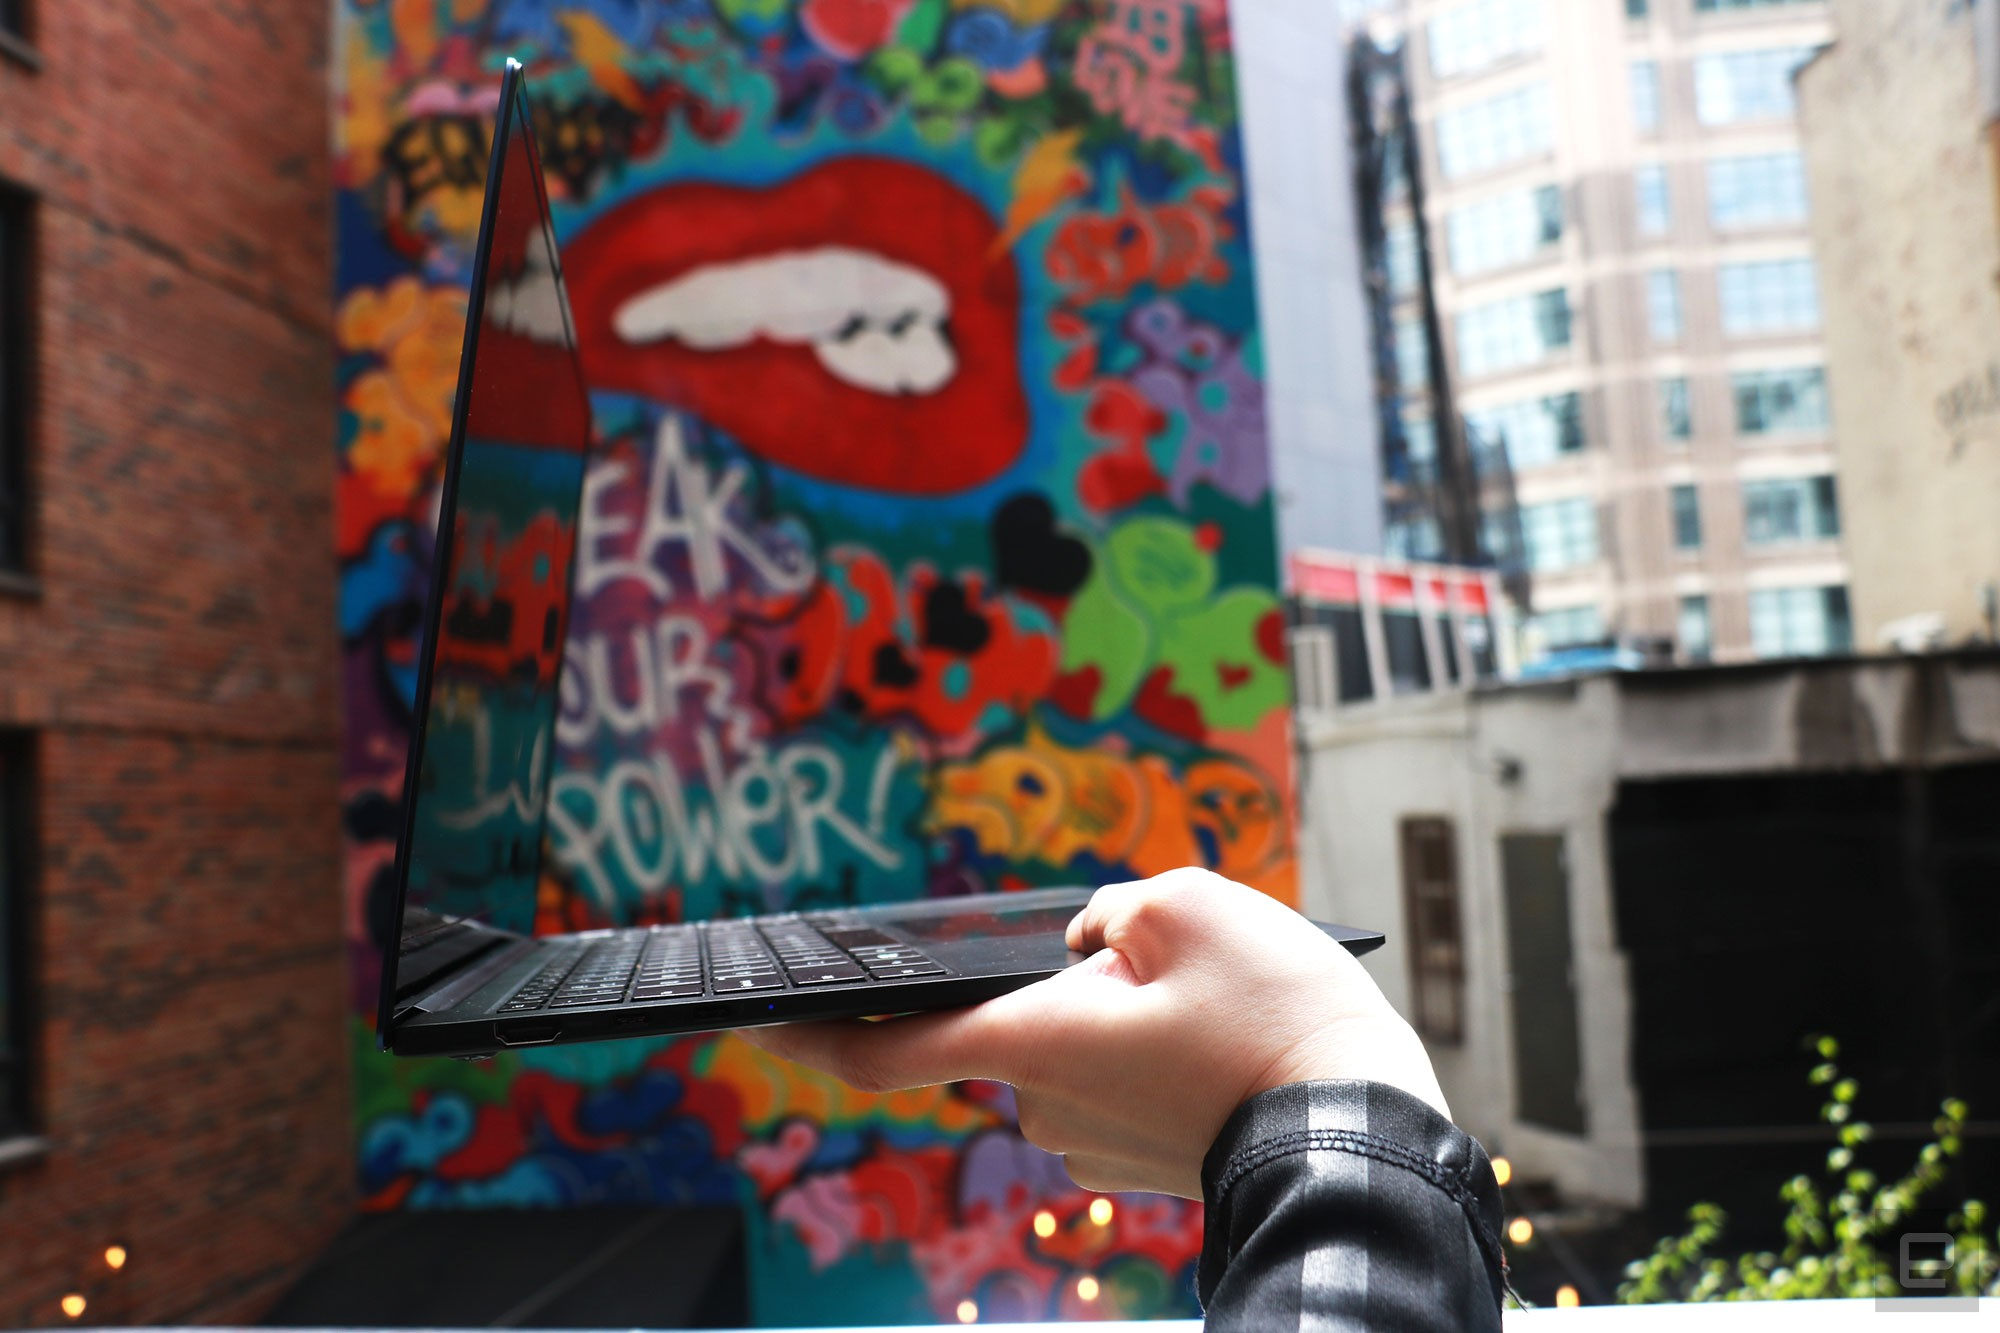 <p>Samsung Galaxy Book Pro 15-inch hands on photos.</p>